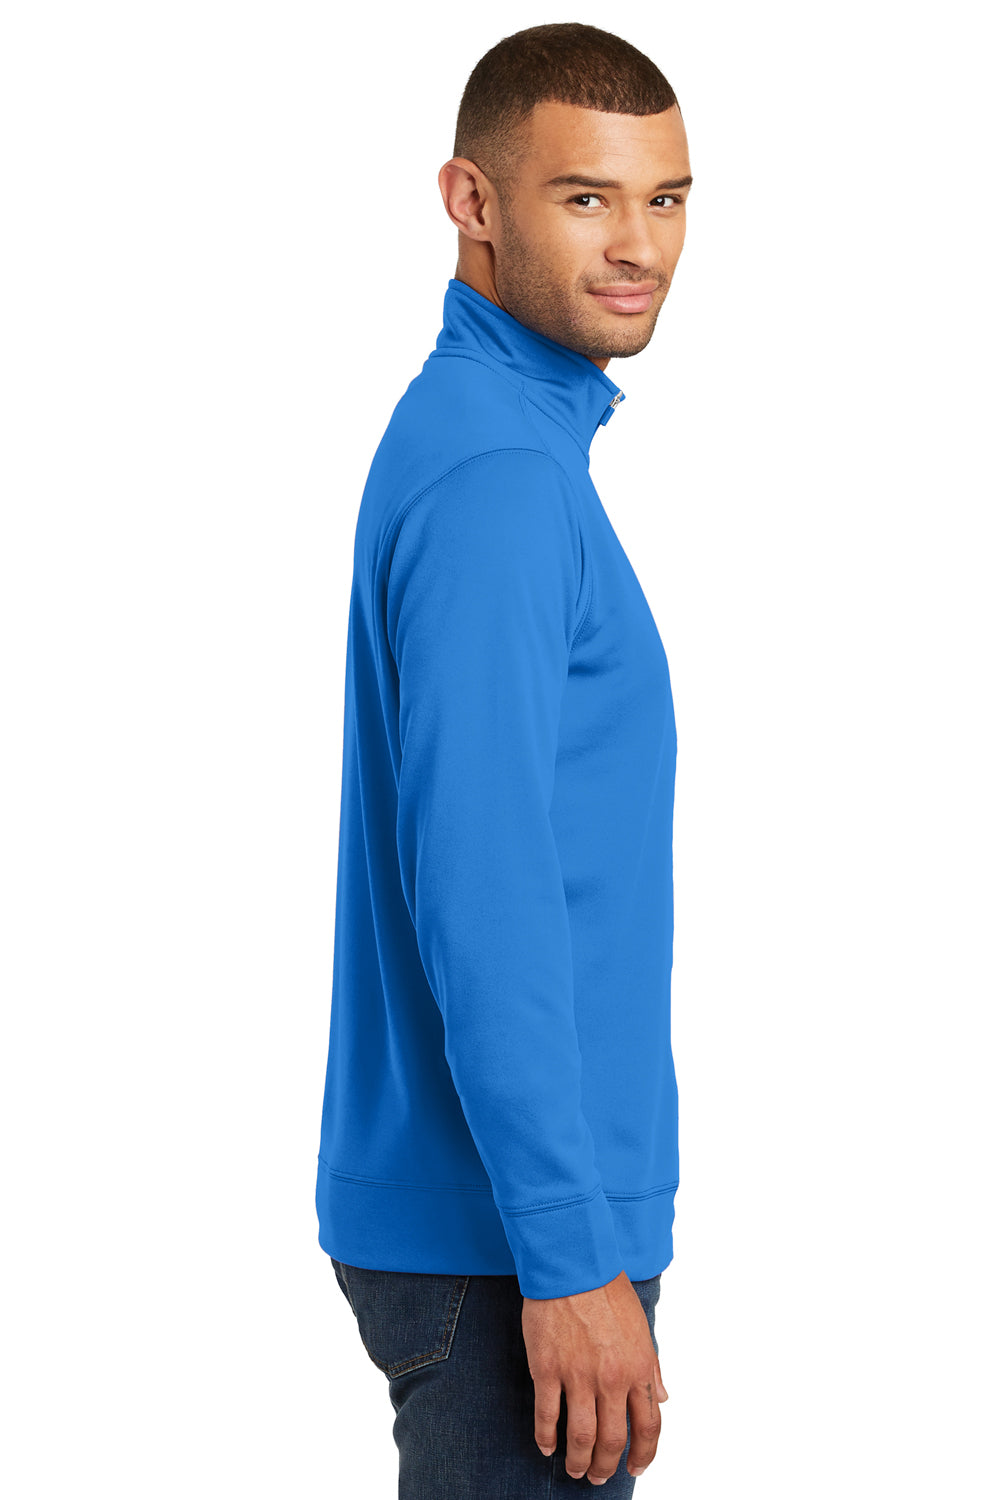 Port & Company PC590Q Mens Dry Zone Performance Moisture Wicking Fleece 1/4 Zip Sweatshirt Royal Blue Side